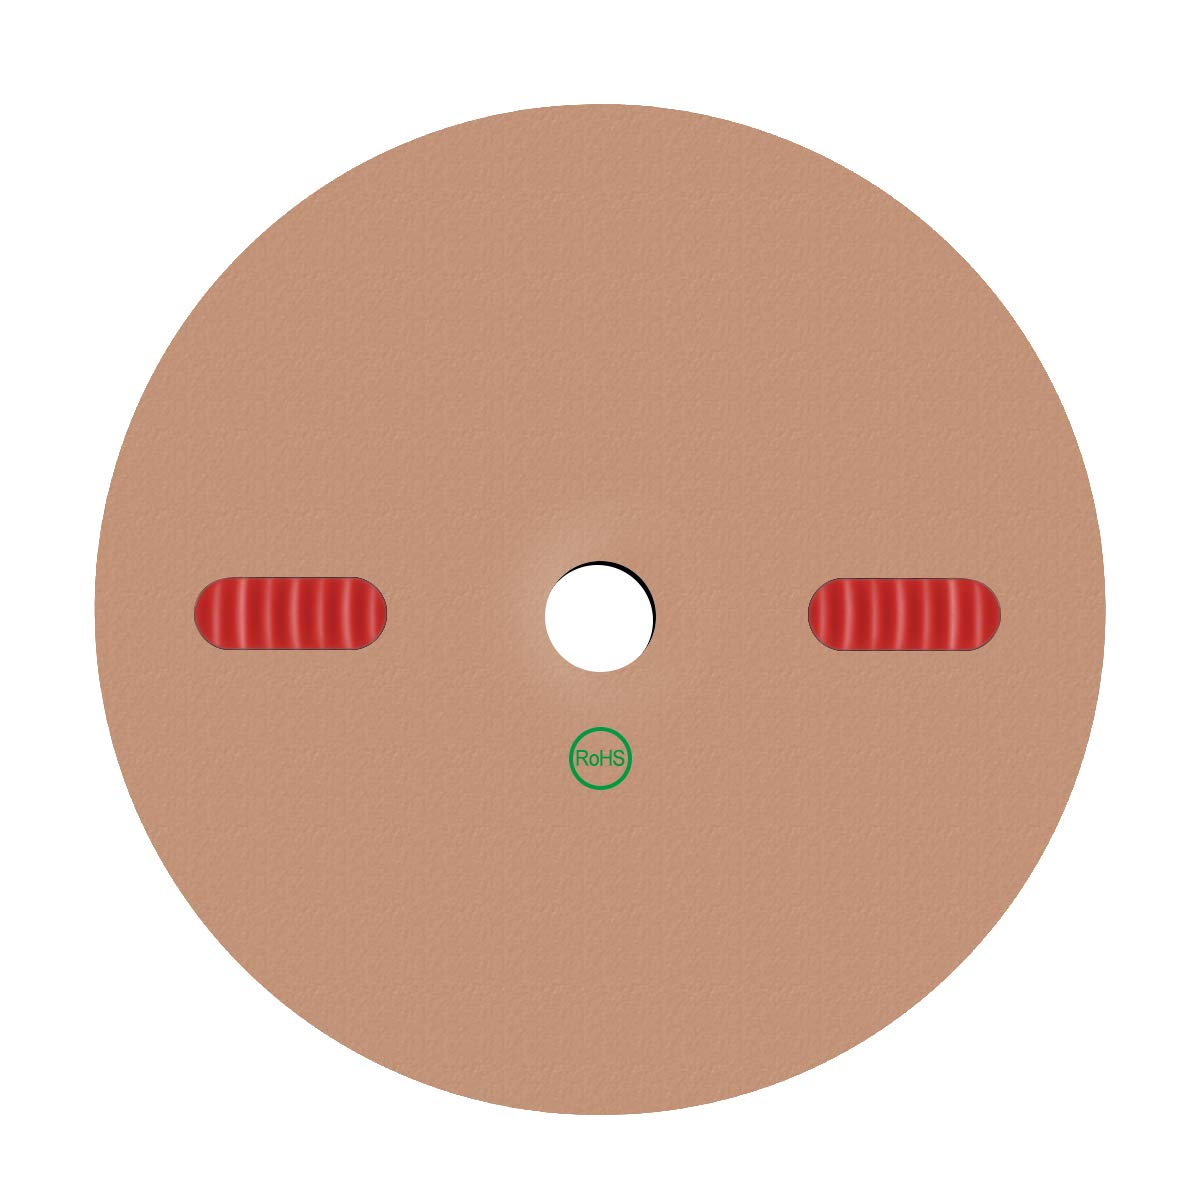 1/8 Inch(3.2mm) 82 Ft XHF 3:1 Waterproof Heat Shrink Tubing Roll Marine Grade Adhesive Lined Heat Shrink Tube, Insulation Sealing Oil-Proof Wear-Resistant Red